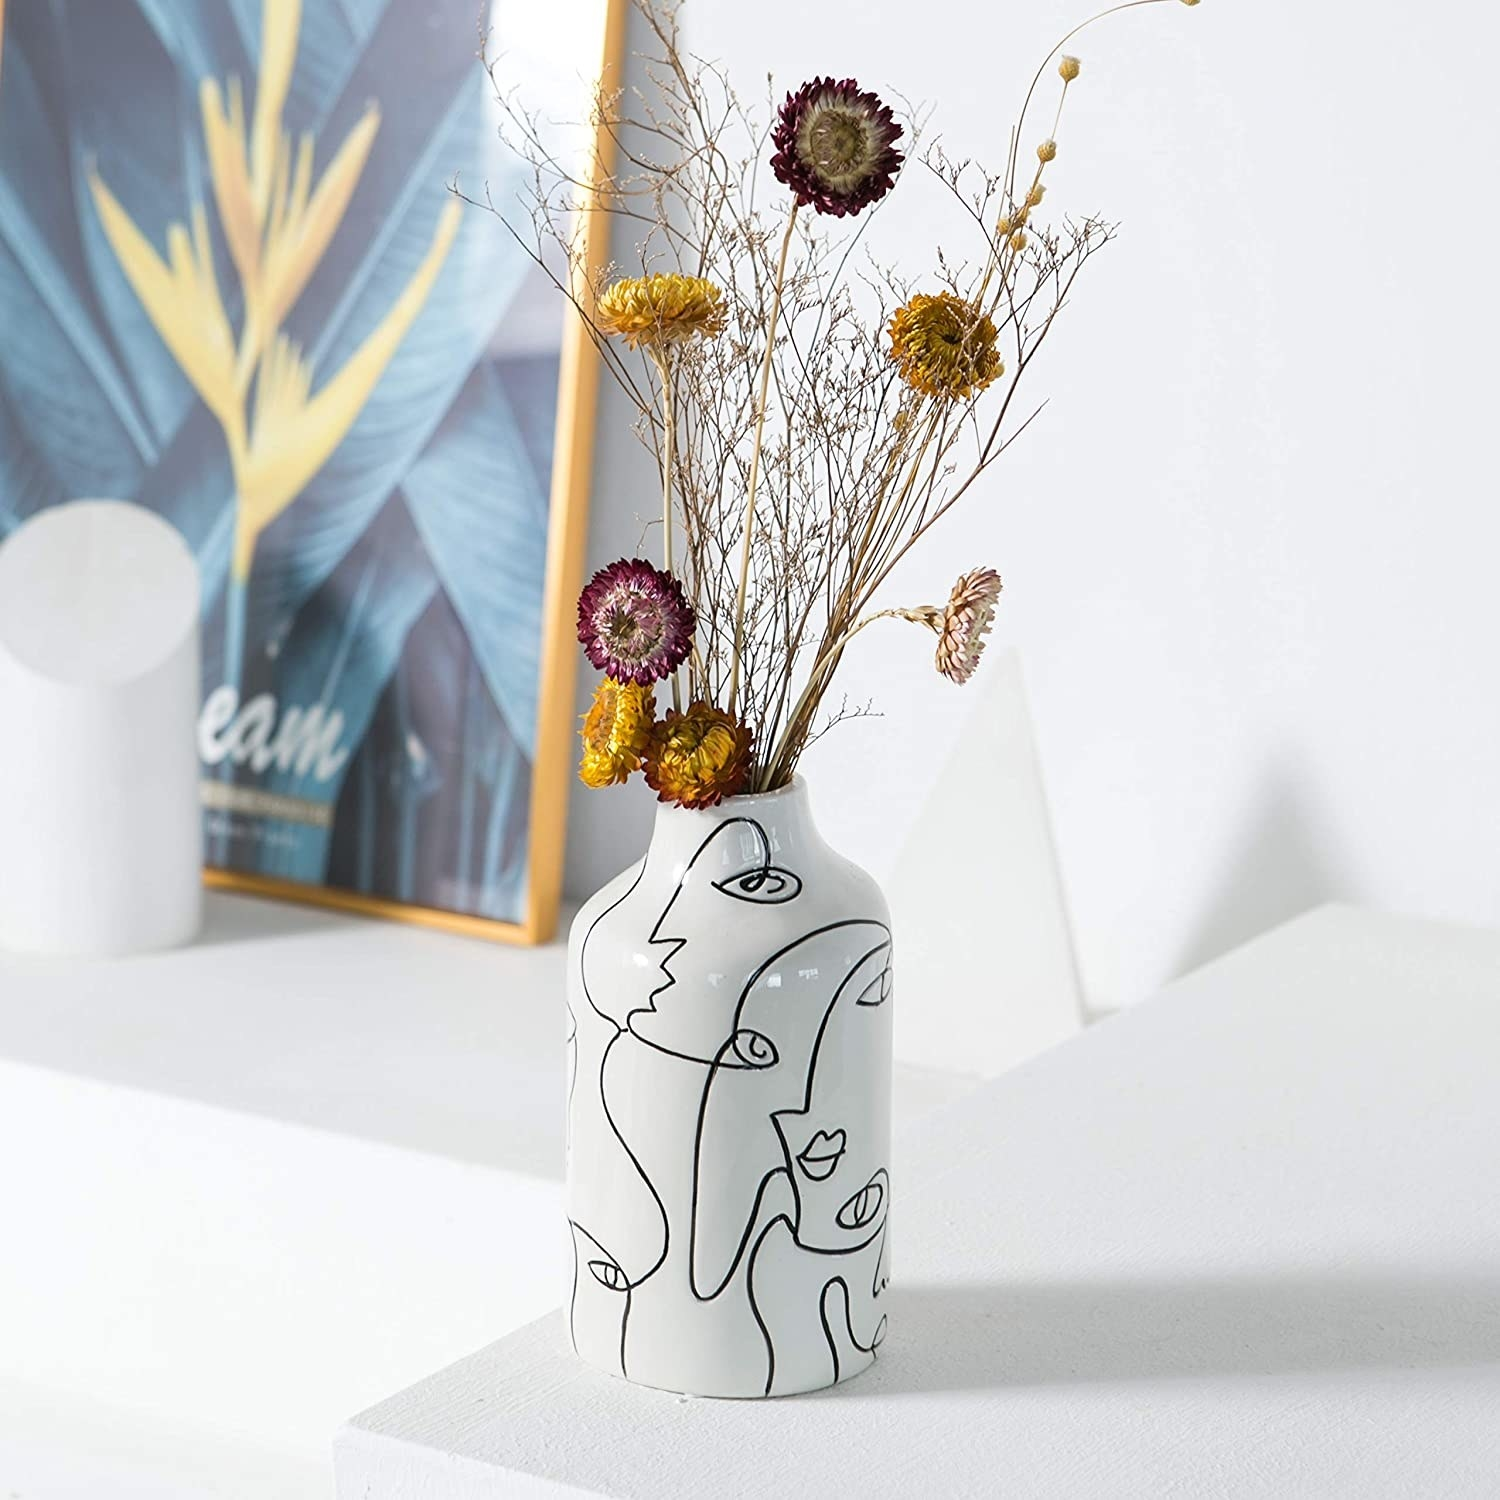 the white etched vase with a bouquet of dried flowers